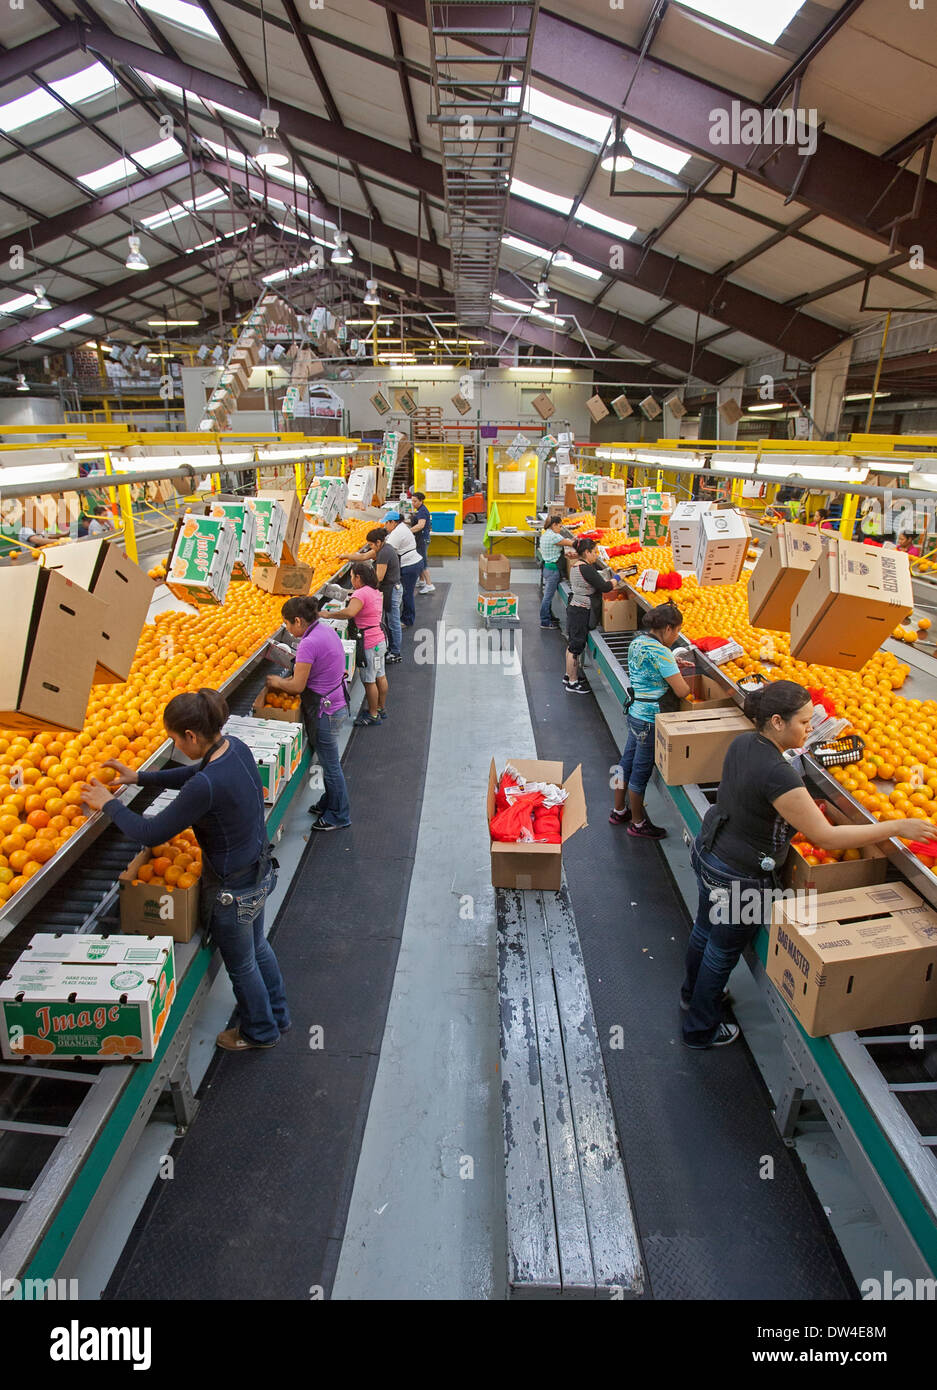 Vero Beach, Florida - Oranges are sorted and packed at the IMG Citrus packinghouse. - Stock Image